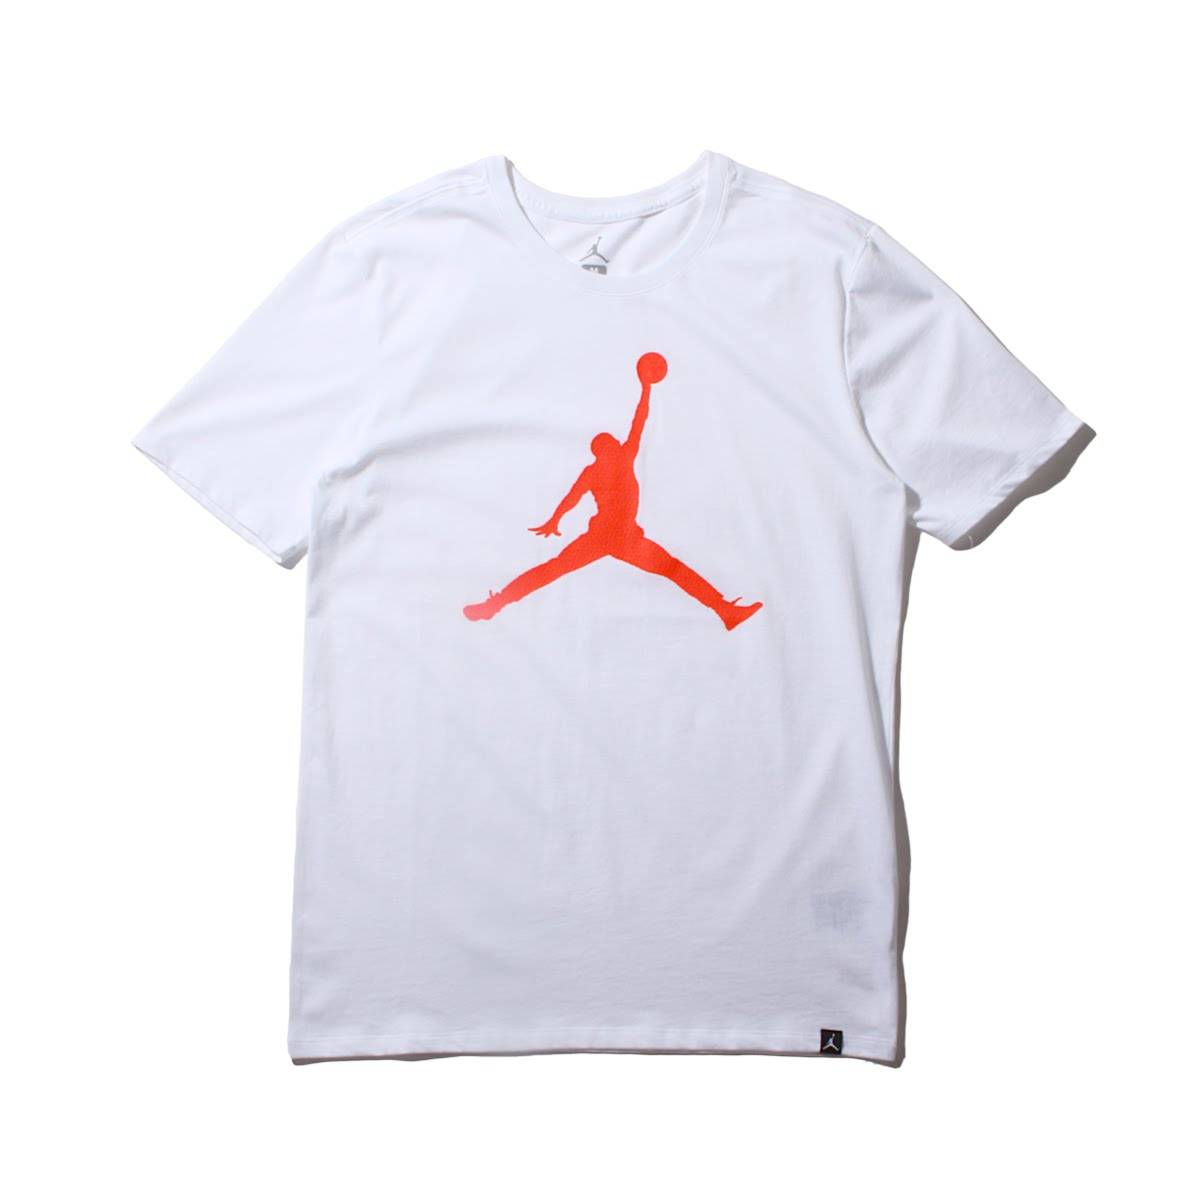 d717228ff85 I add comfortable comfort to a classic design. The JUMPMAN logo that is  Aiko Nic knit to a tender cotton material and hem.